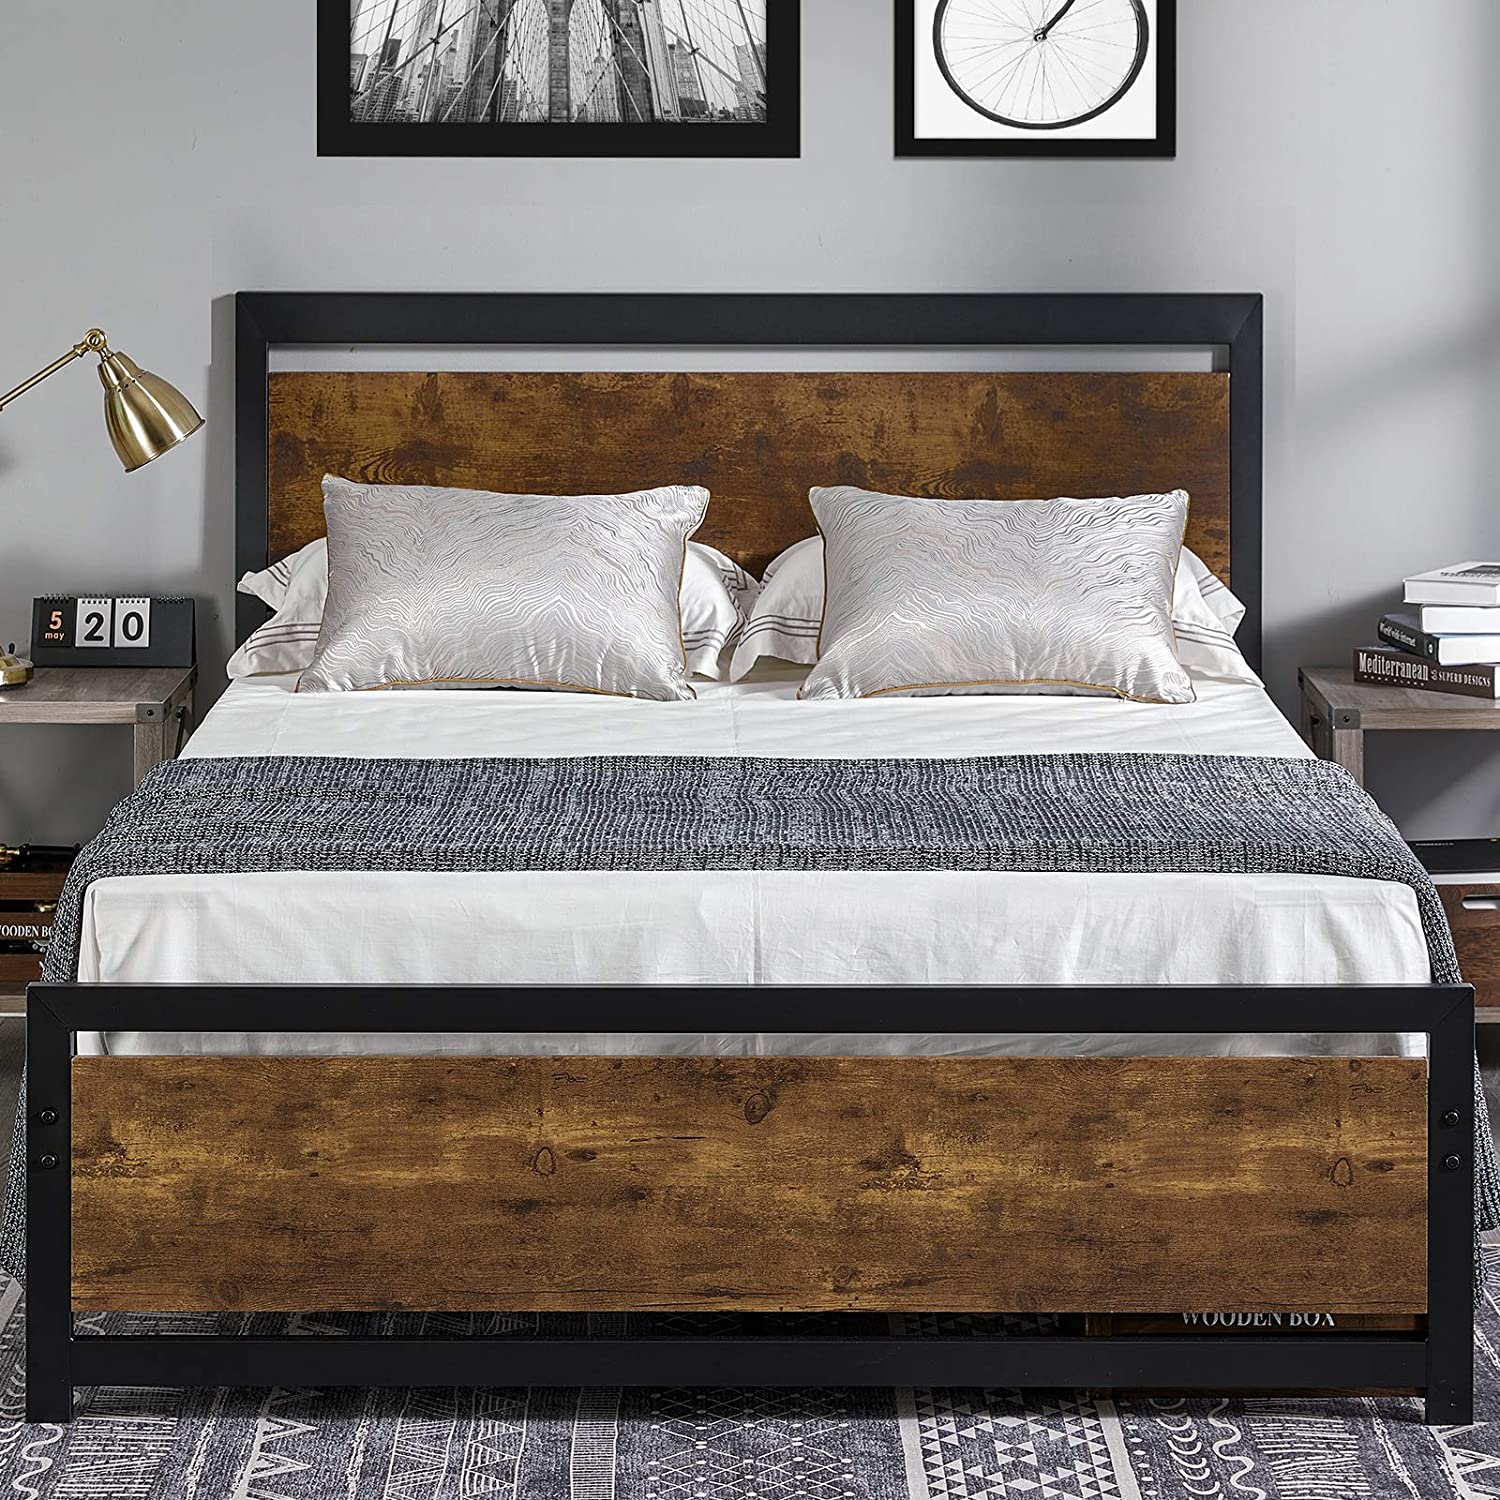 Amerlife Queen Size Bed Frame with Wood Headboard - Metal Platform Bed with Industrial Footboard - Heavy Duty Steel Mattress Foundation/ 4 U-Shaped Support Frames/Rustic Country Style/Easy Assembly